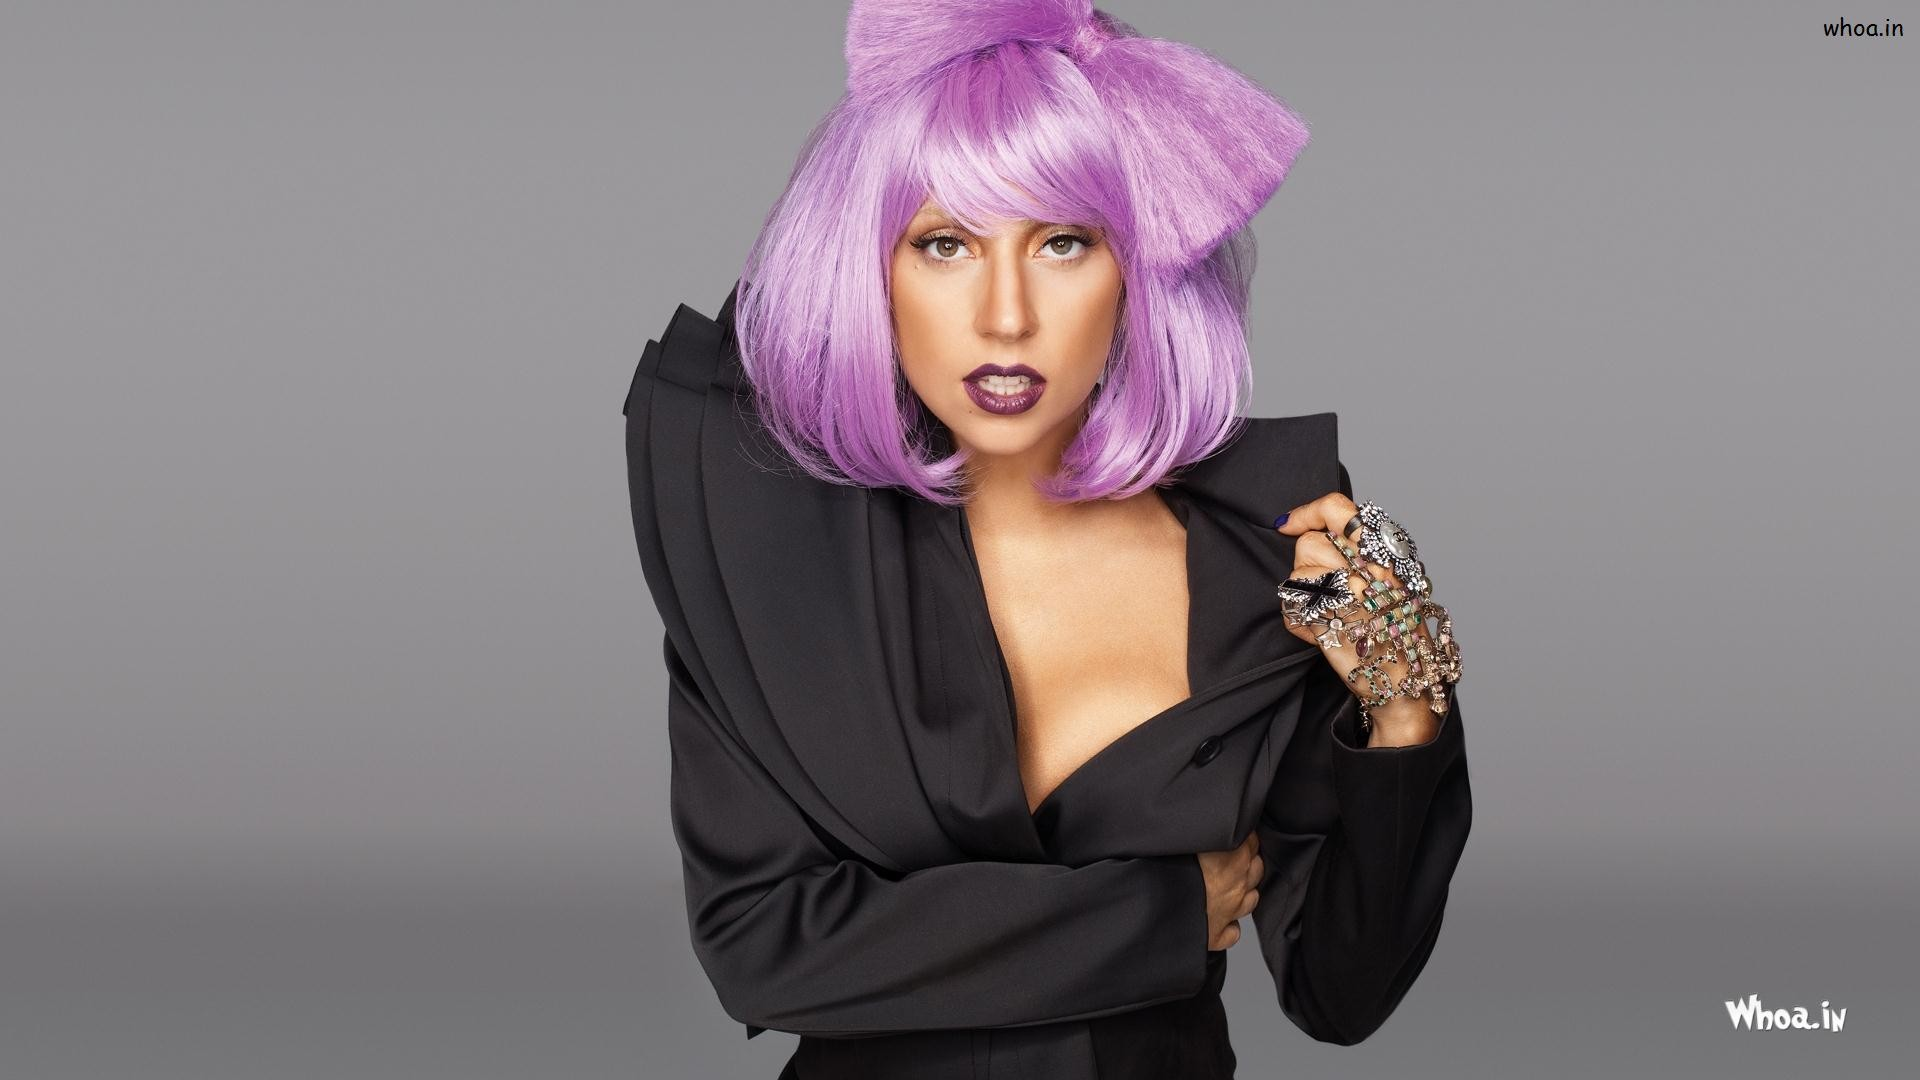 lady gagas purpal hair style wallpaper